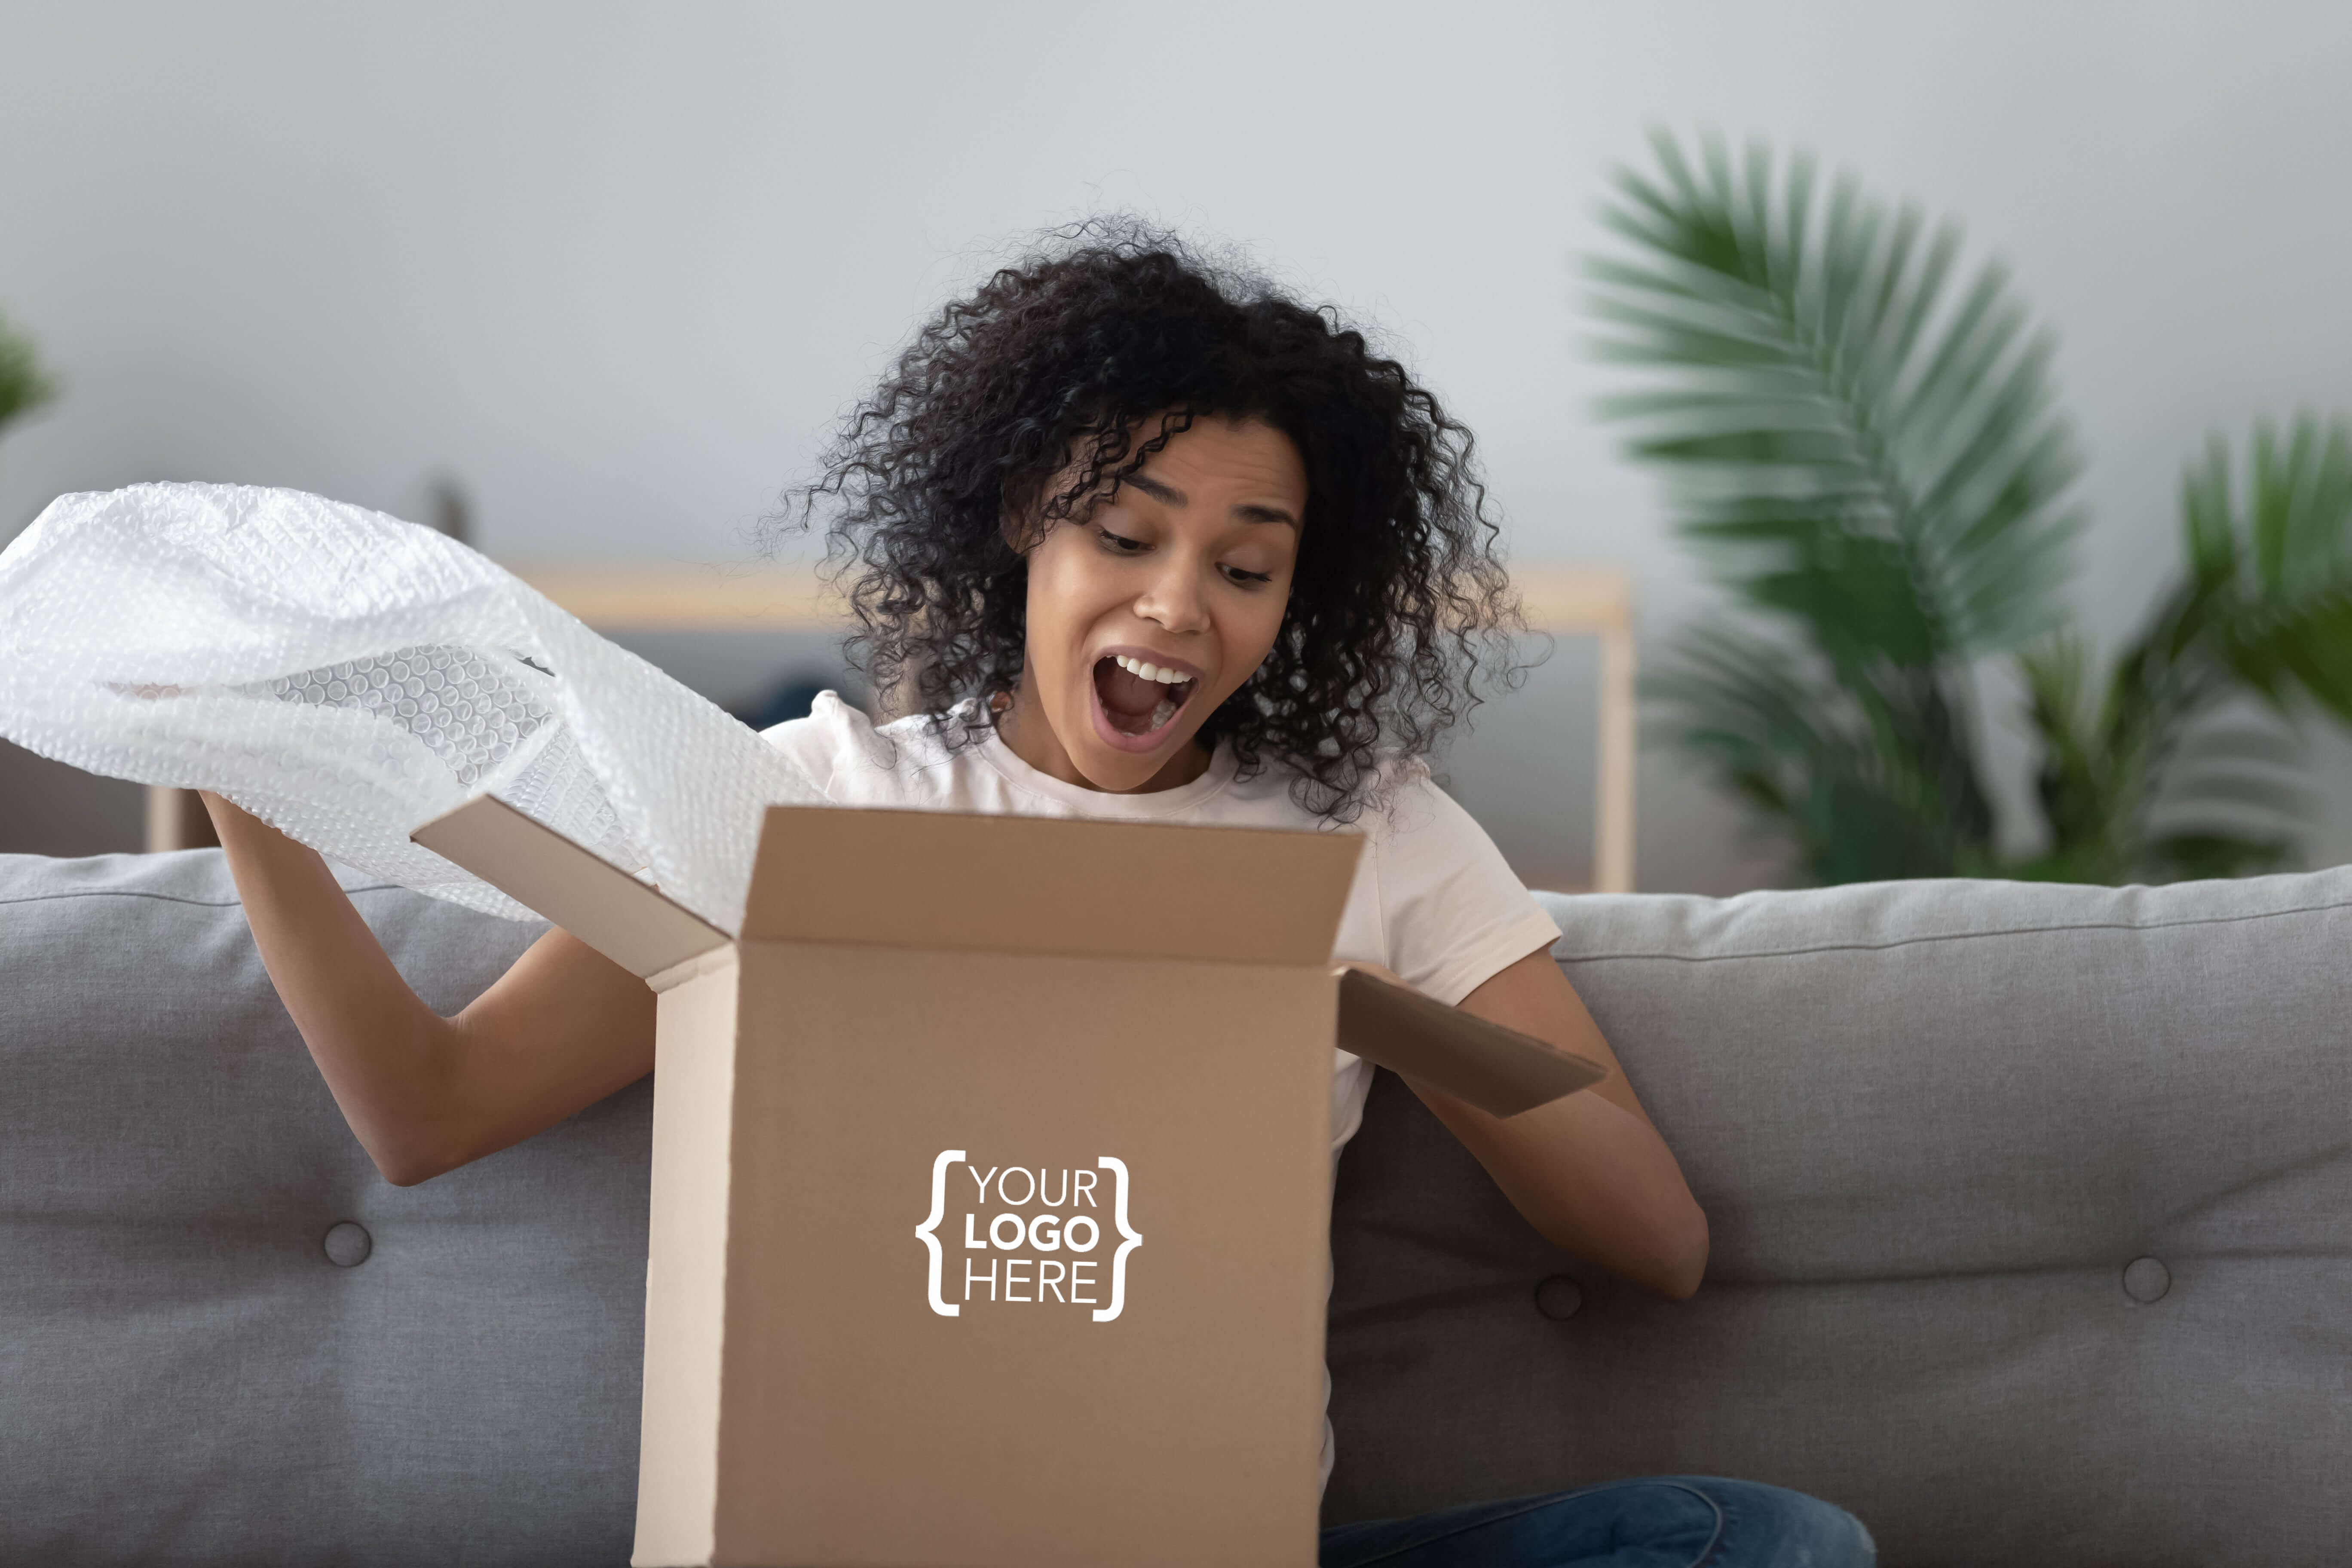 Girl holding box with your logo